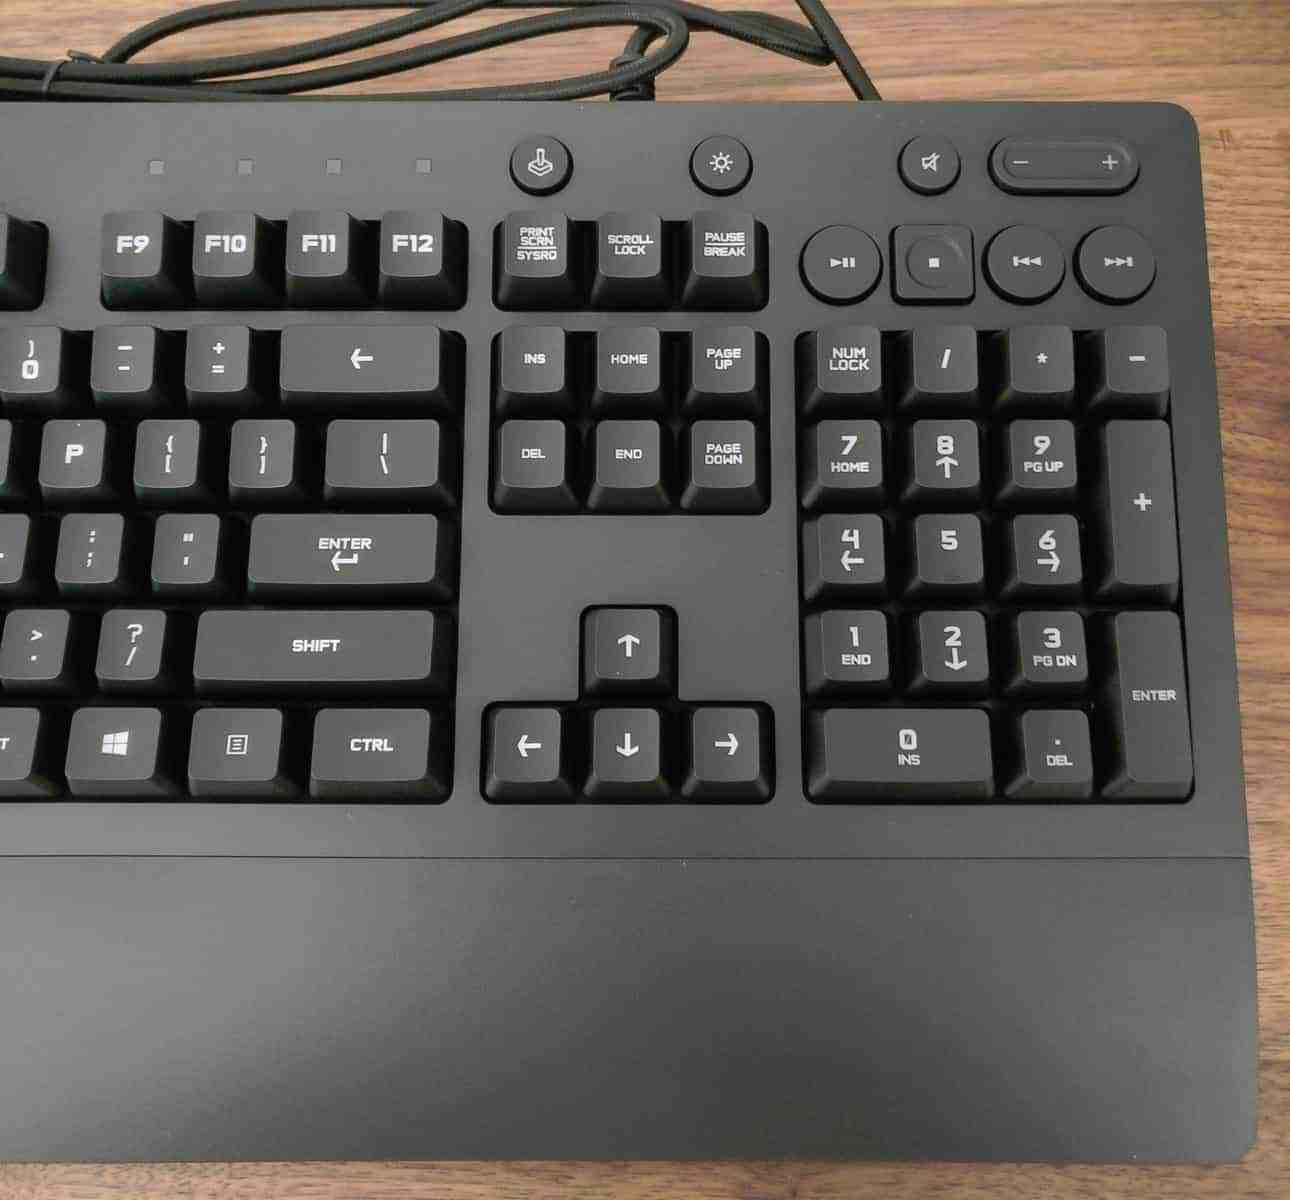 Logitech-G213-Photos16 Logitech G213 Prodigy RGB Gaming Keyboard Review